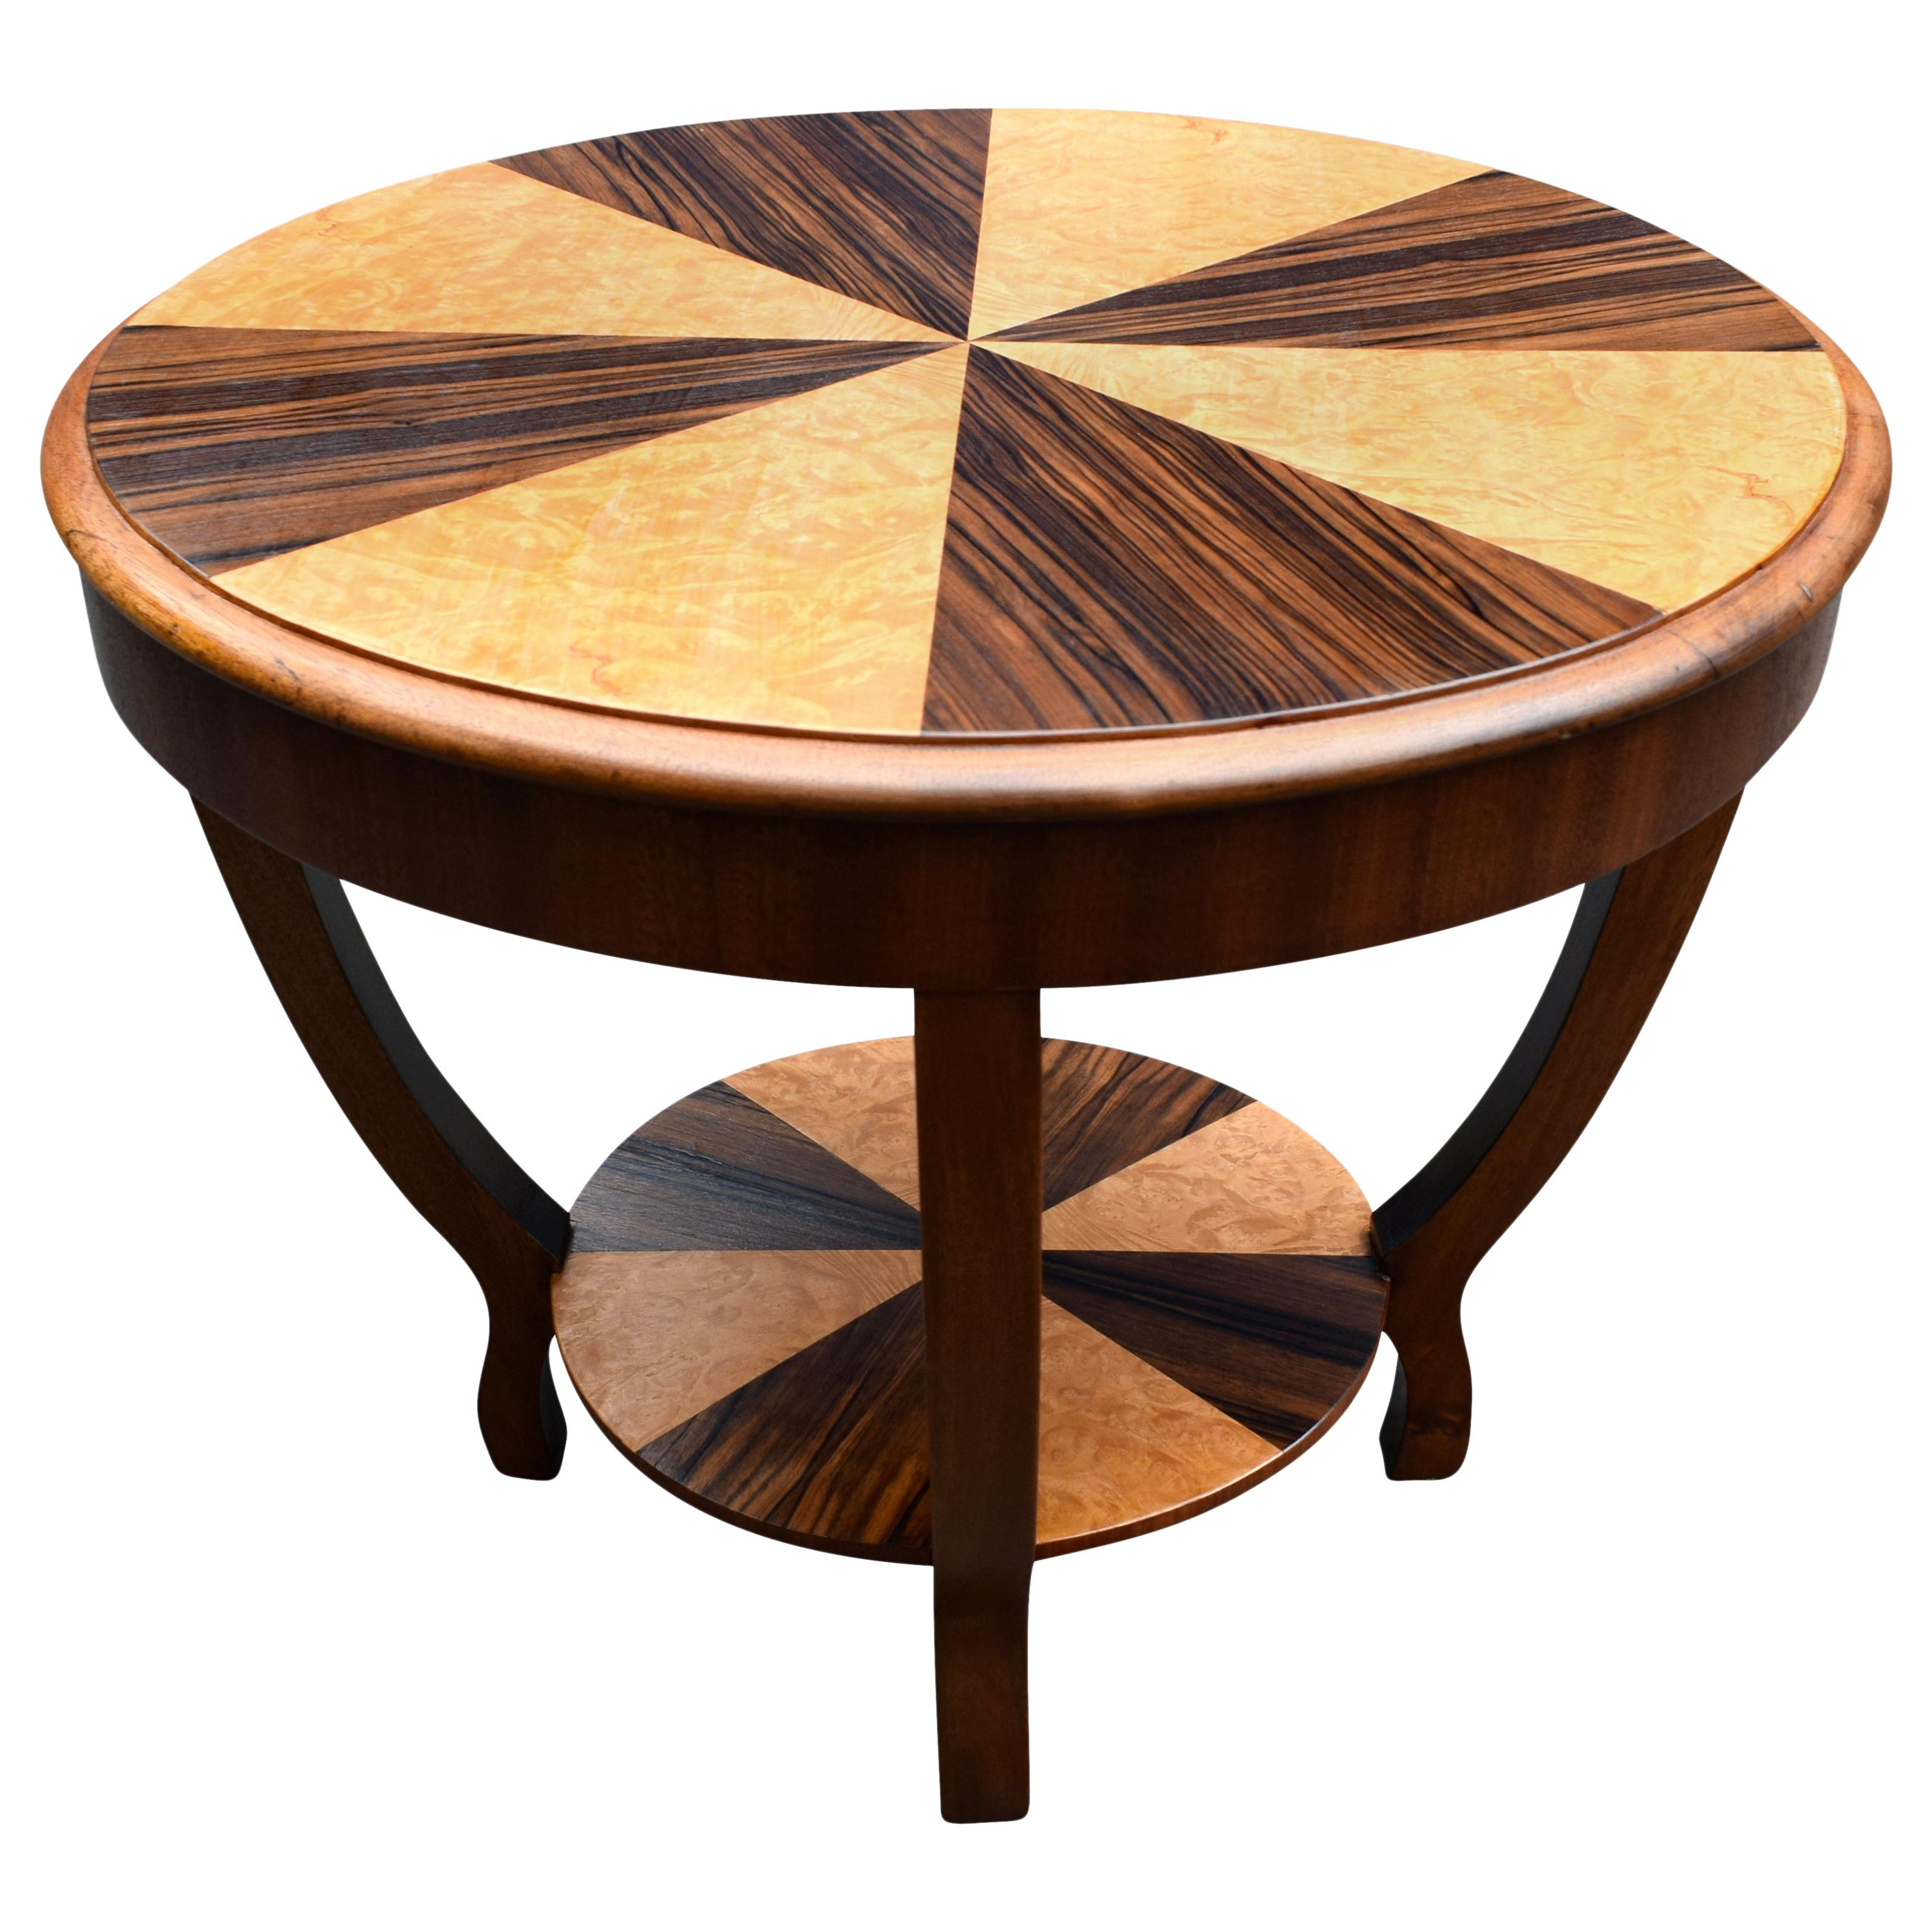 Art Deco Two-Tier Occasional Table in Walnut and Maple, circa 1930s